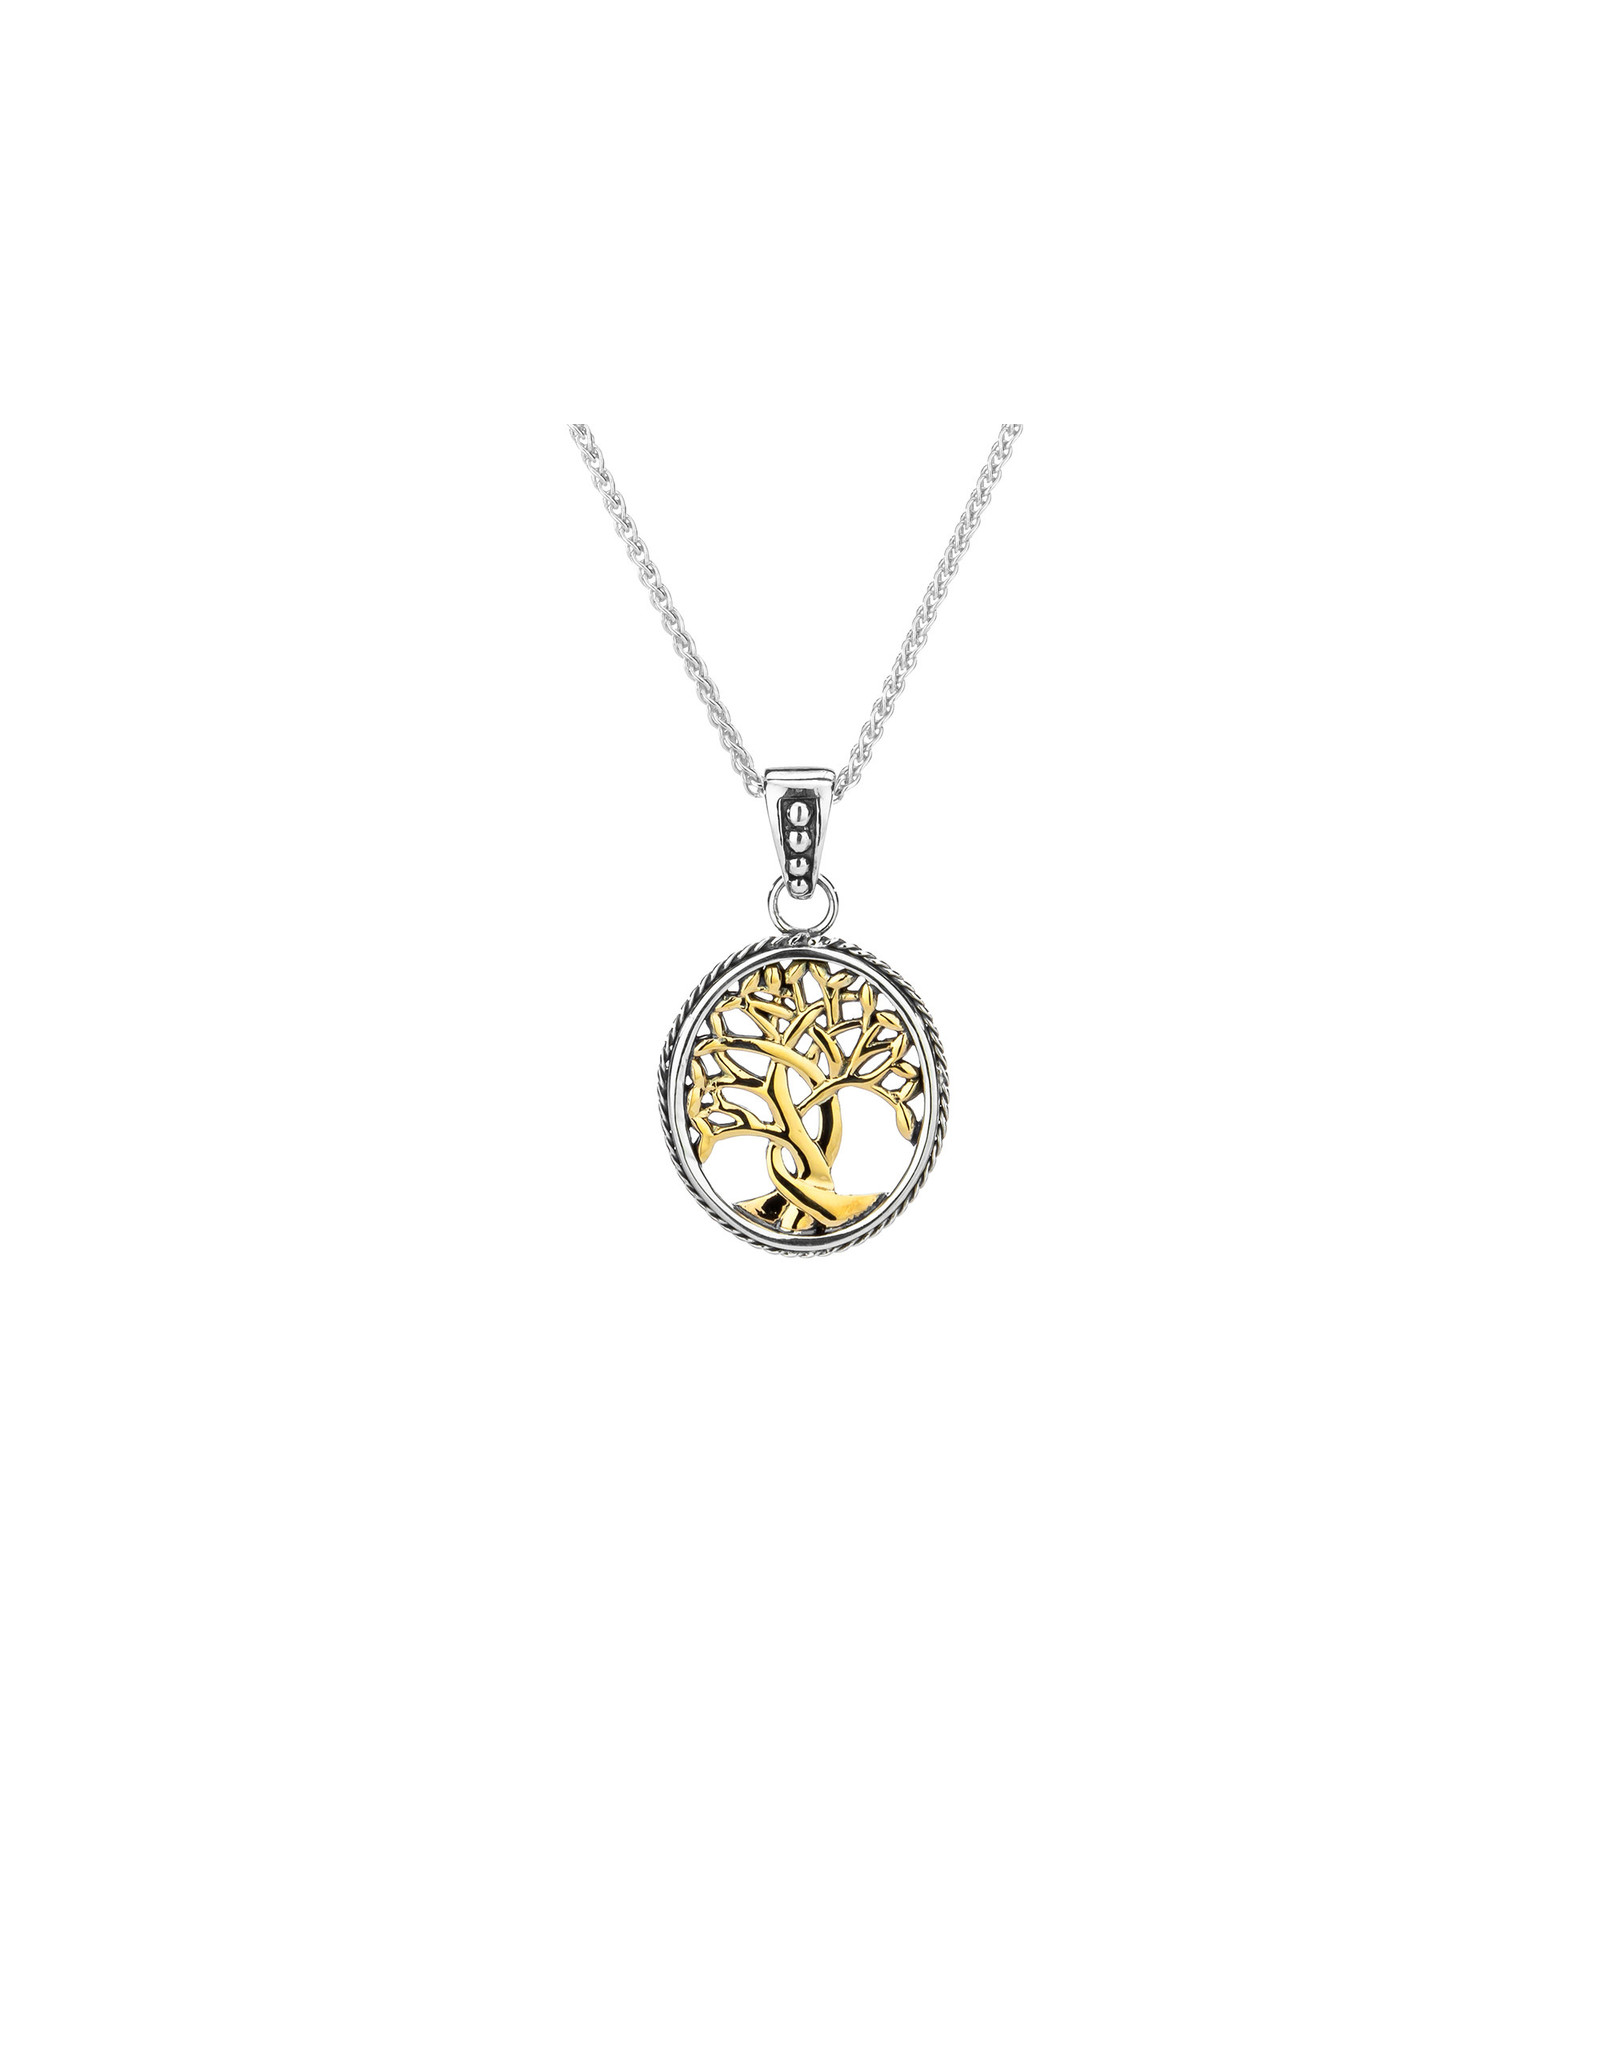 Keith Jack Silver + 10k Tree of Life Necklace